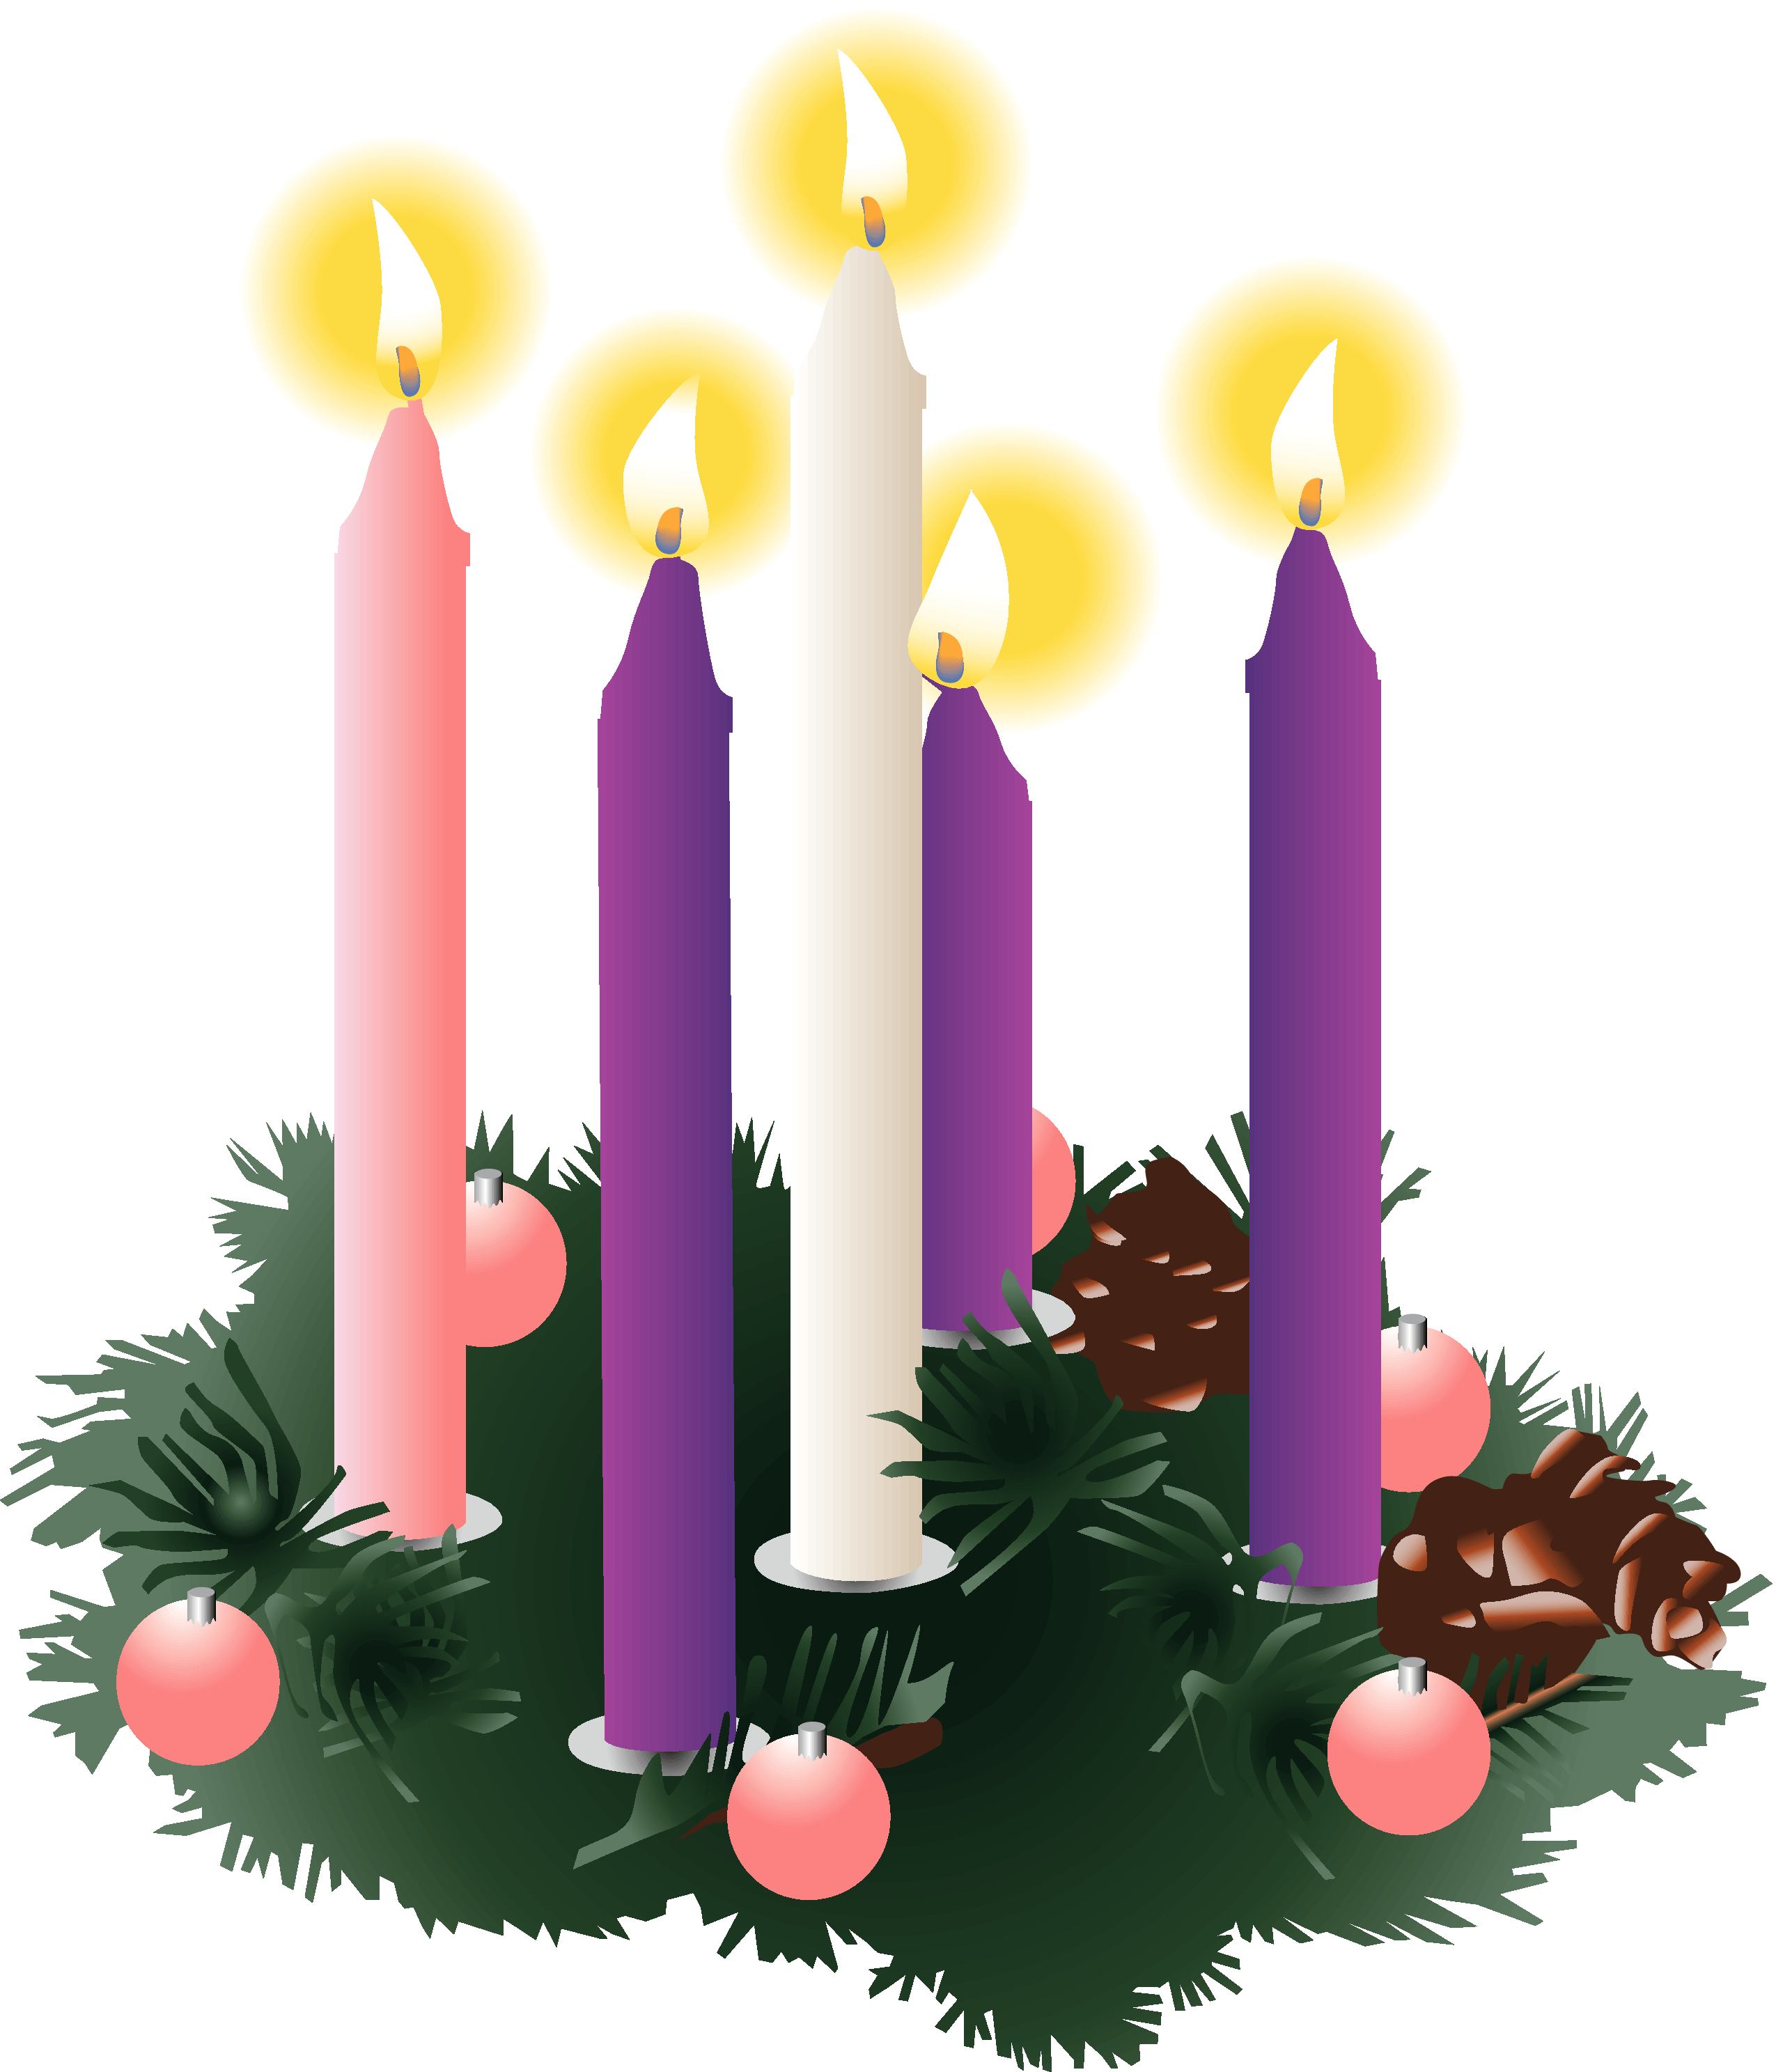 Five lit advent candles. Clipart candle baptism candle